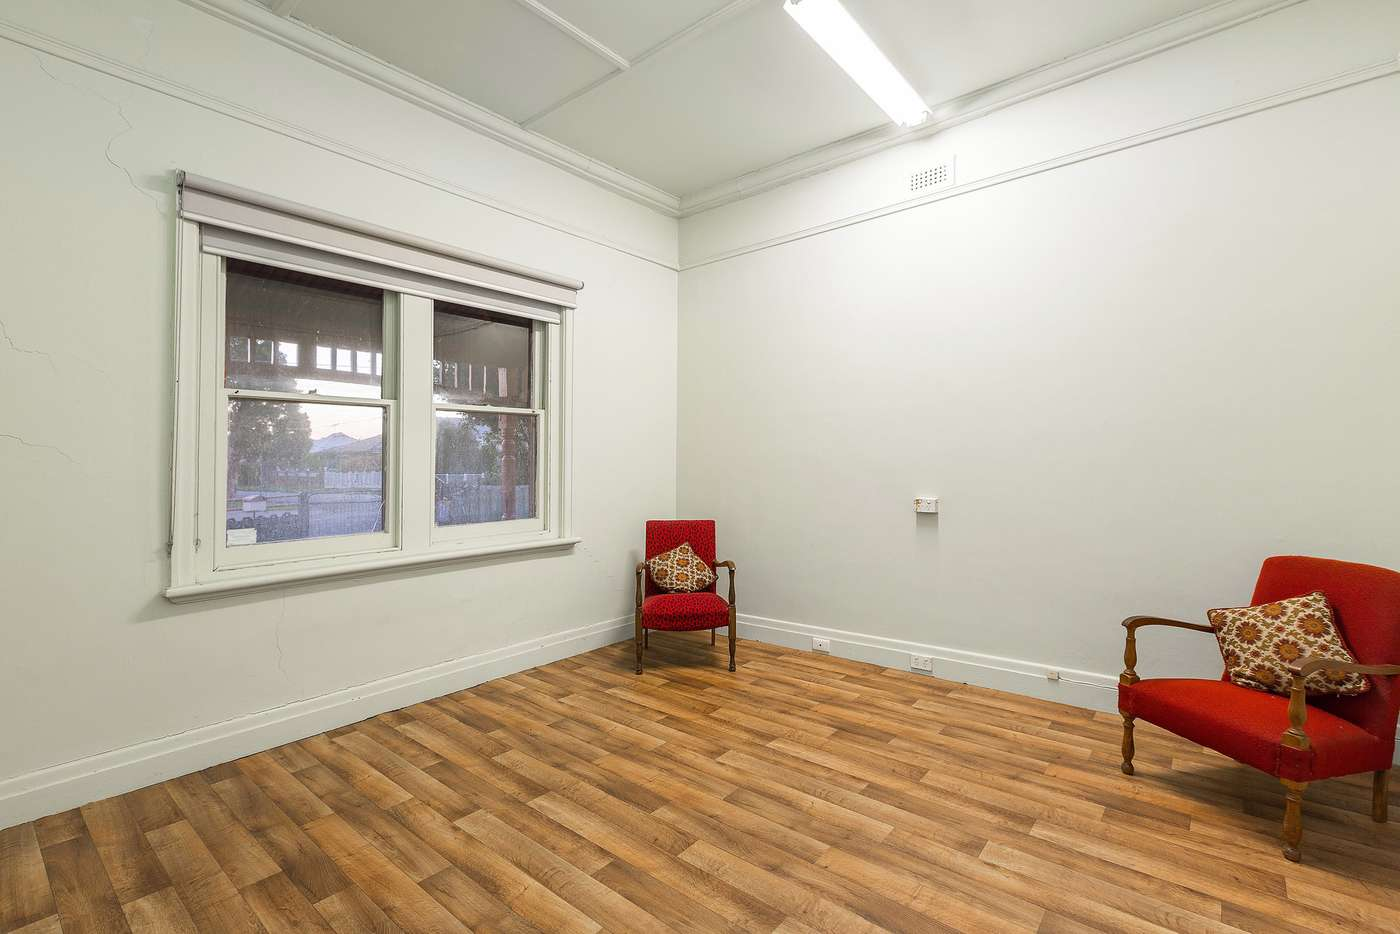 Fifth view of Homely house listing, 7 Stafford Street, Footscray VIC 3011